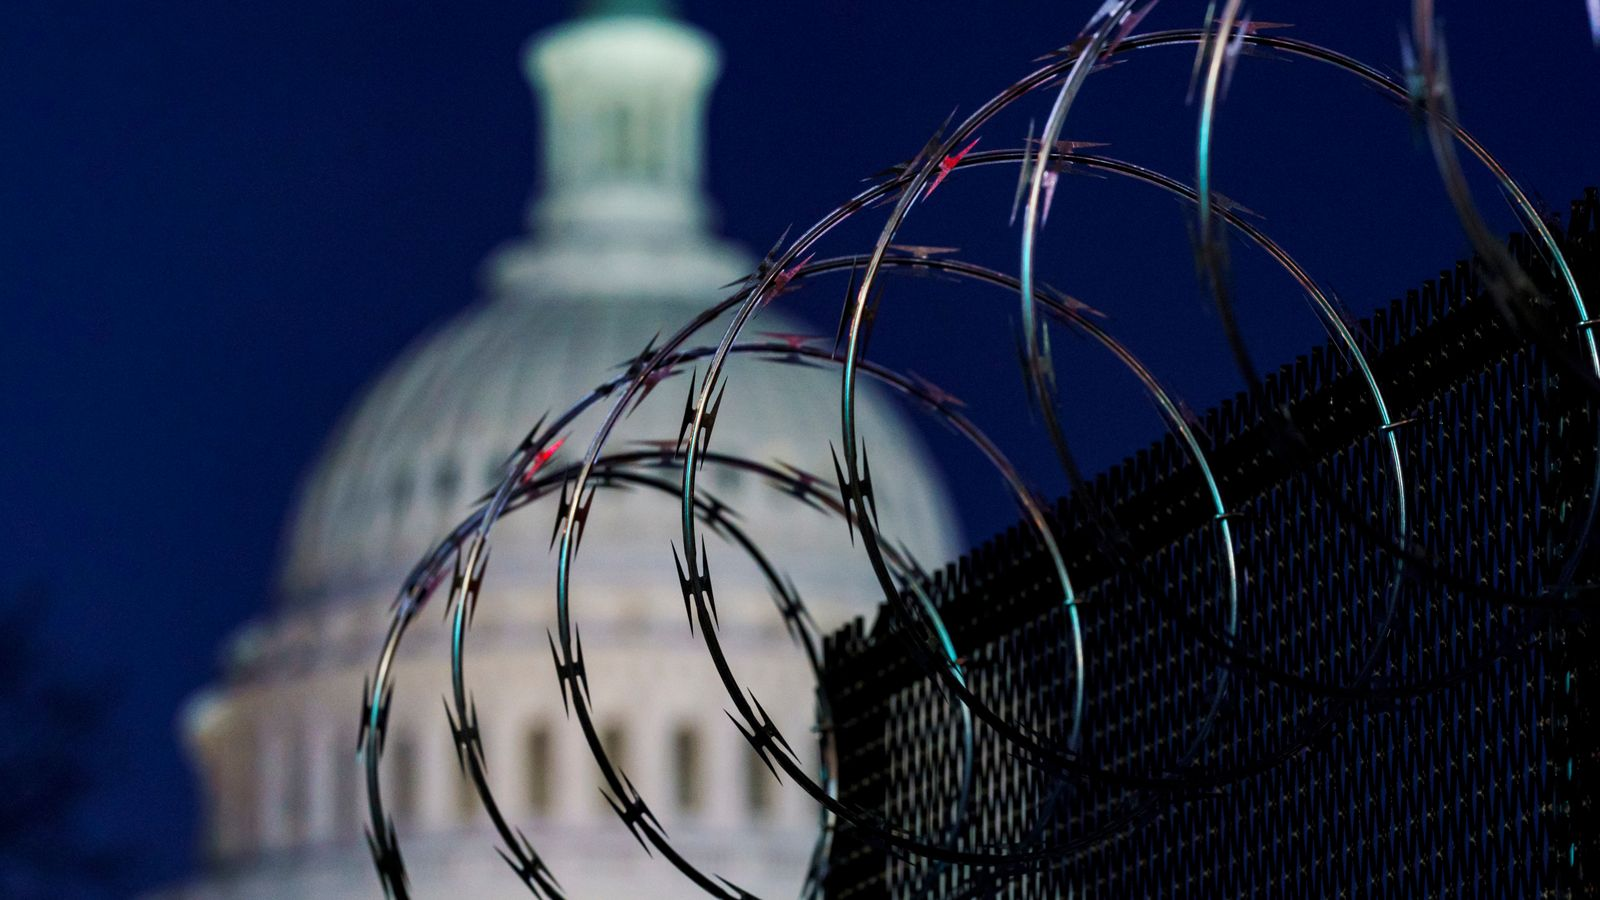 US politicians stepping up security in increasingly acrimonious political climate